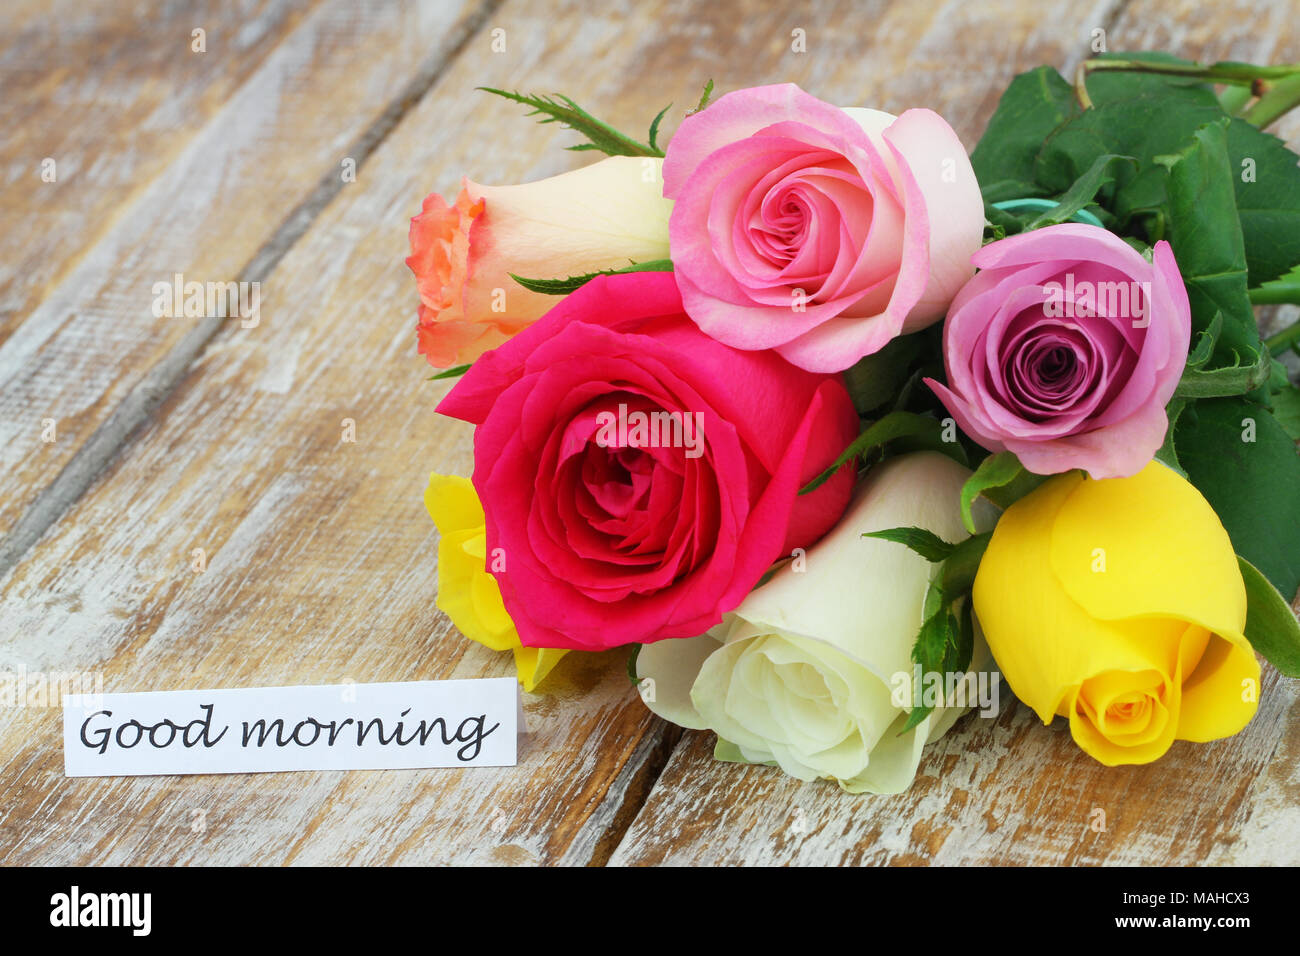 good morning card with colorful rose bouquet on rustic wooden